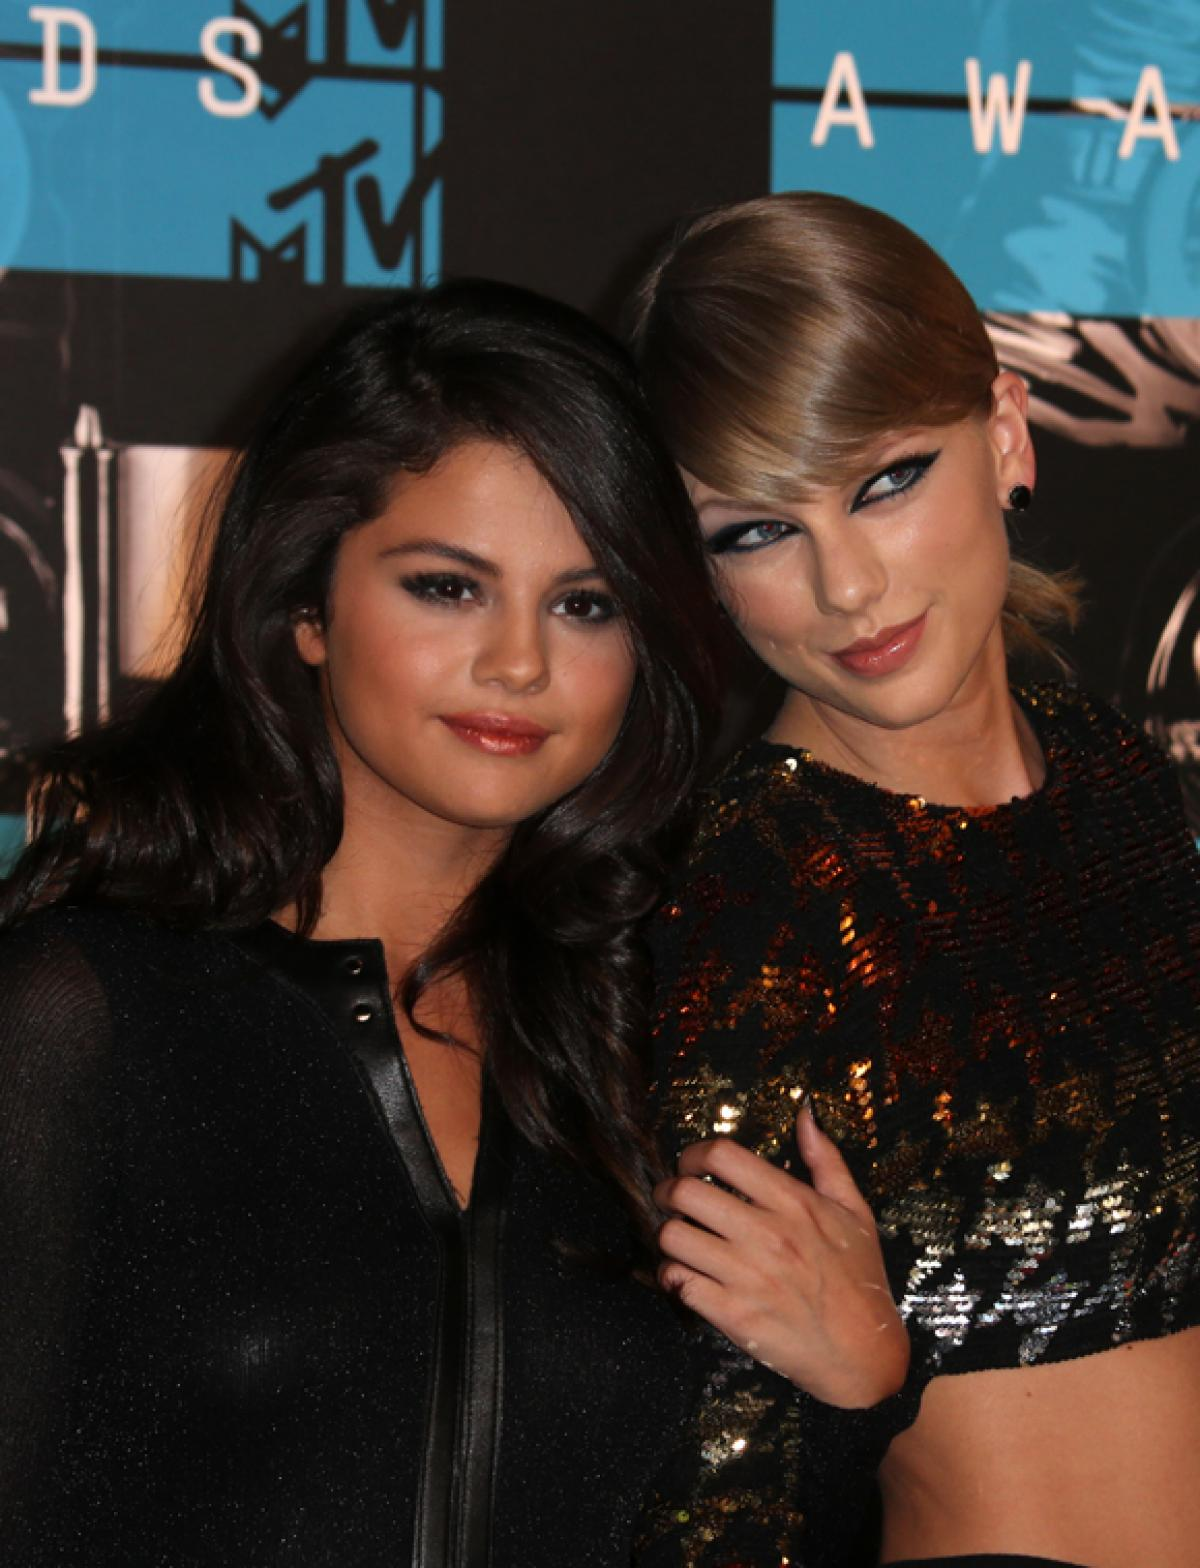 Taylor Swift Was A 'Source Of Comfort' For Selena Gomez AfterReported Emotional Breakdown! - Perez Hilton